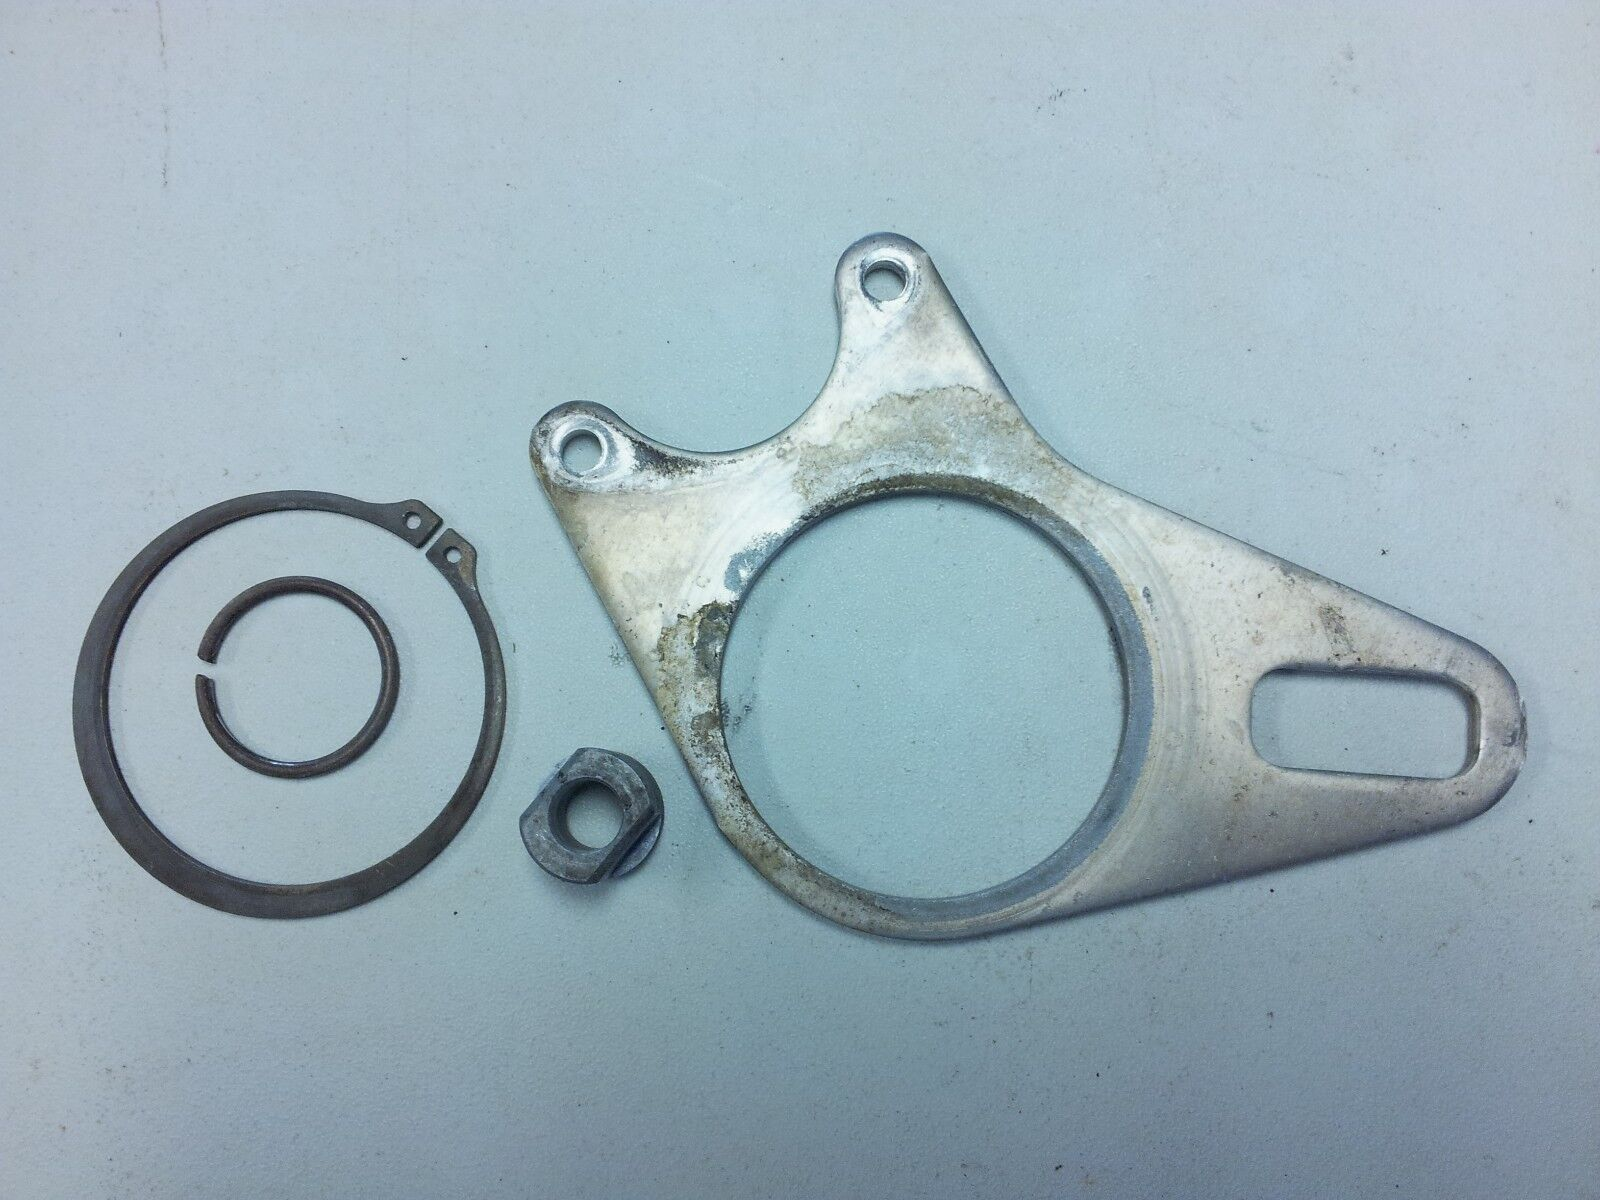 2004 PREDATOR 500 OEM REAR BRAKE STAY HOLDER MOUNT ASSY W/ CIRCLIP BUSHING